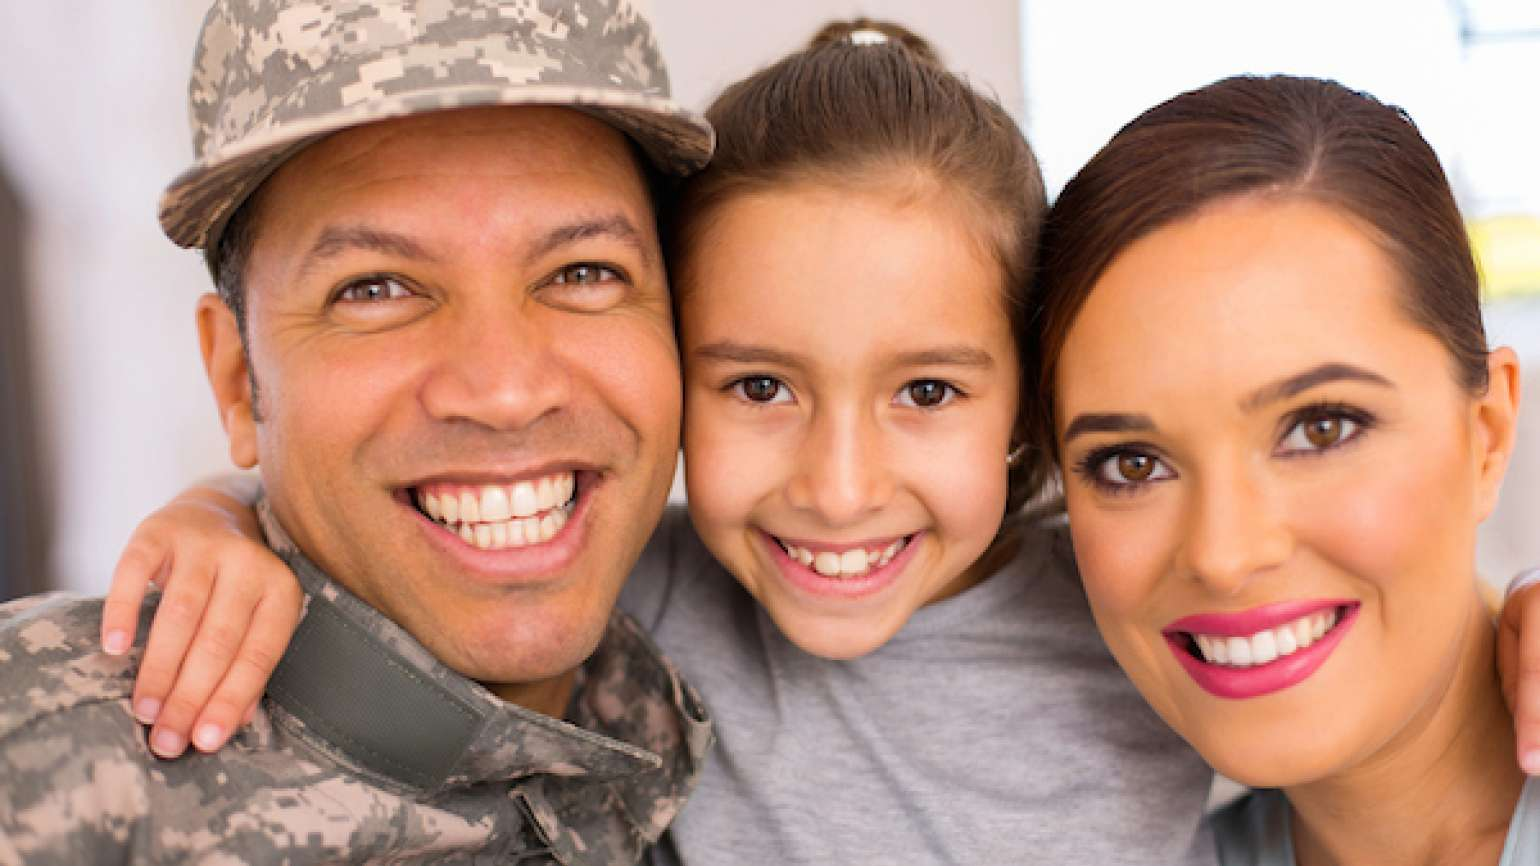 10 lessons learned in a military family